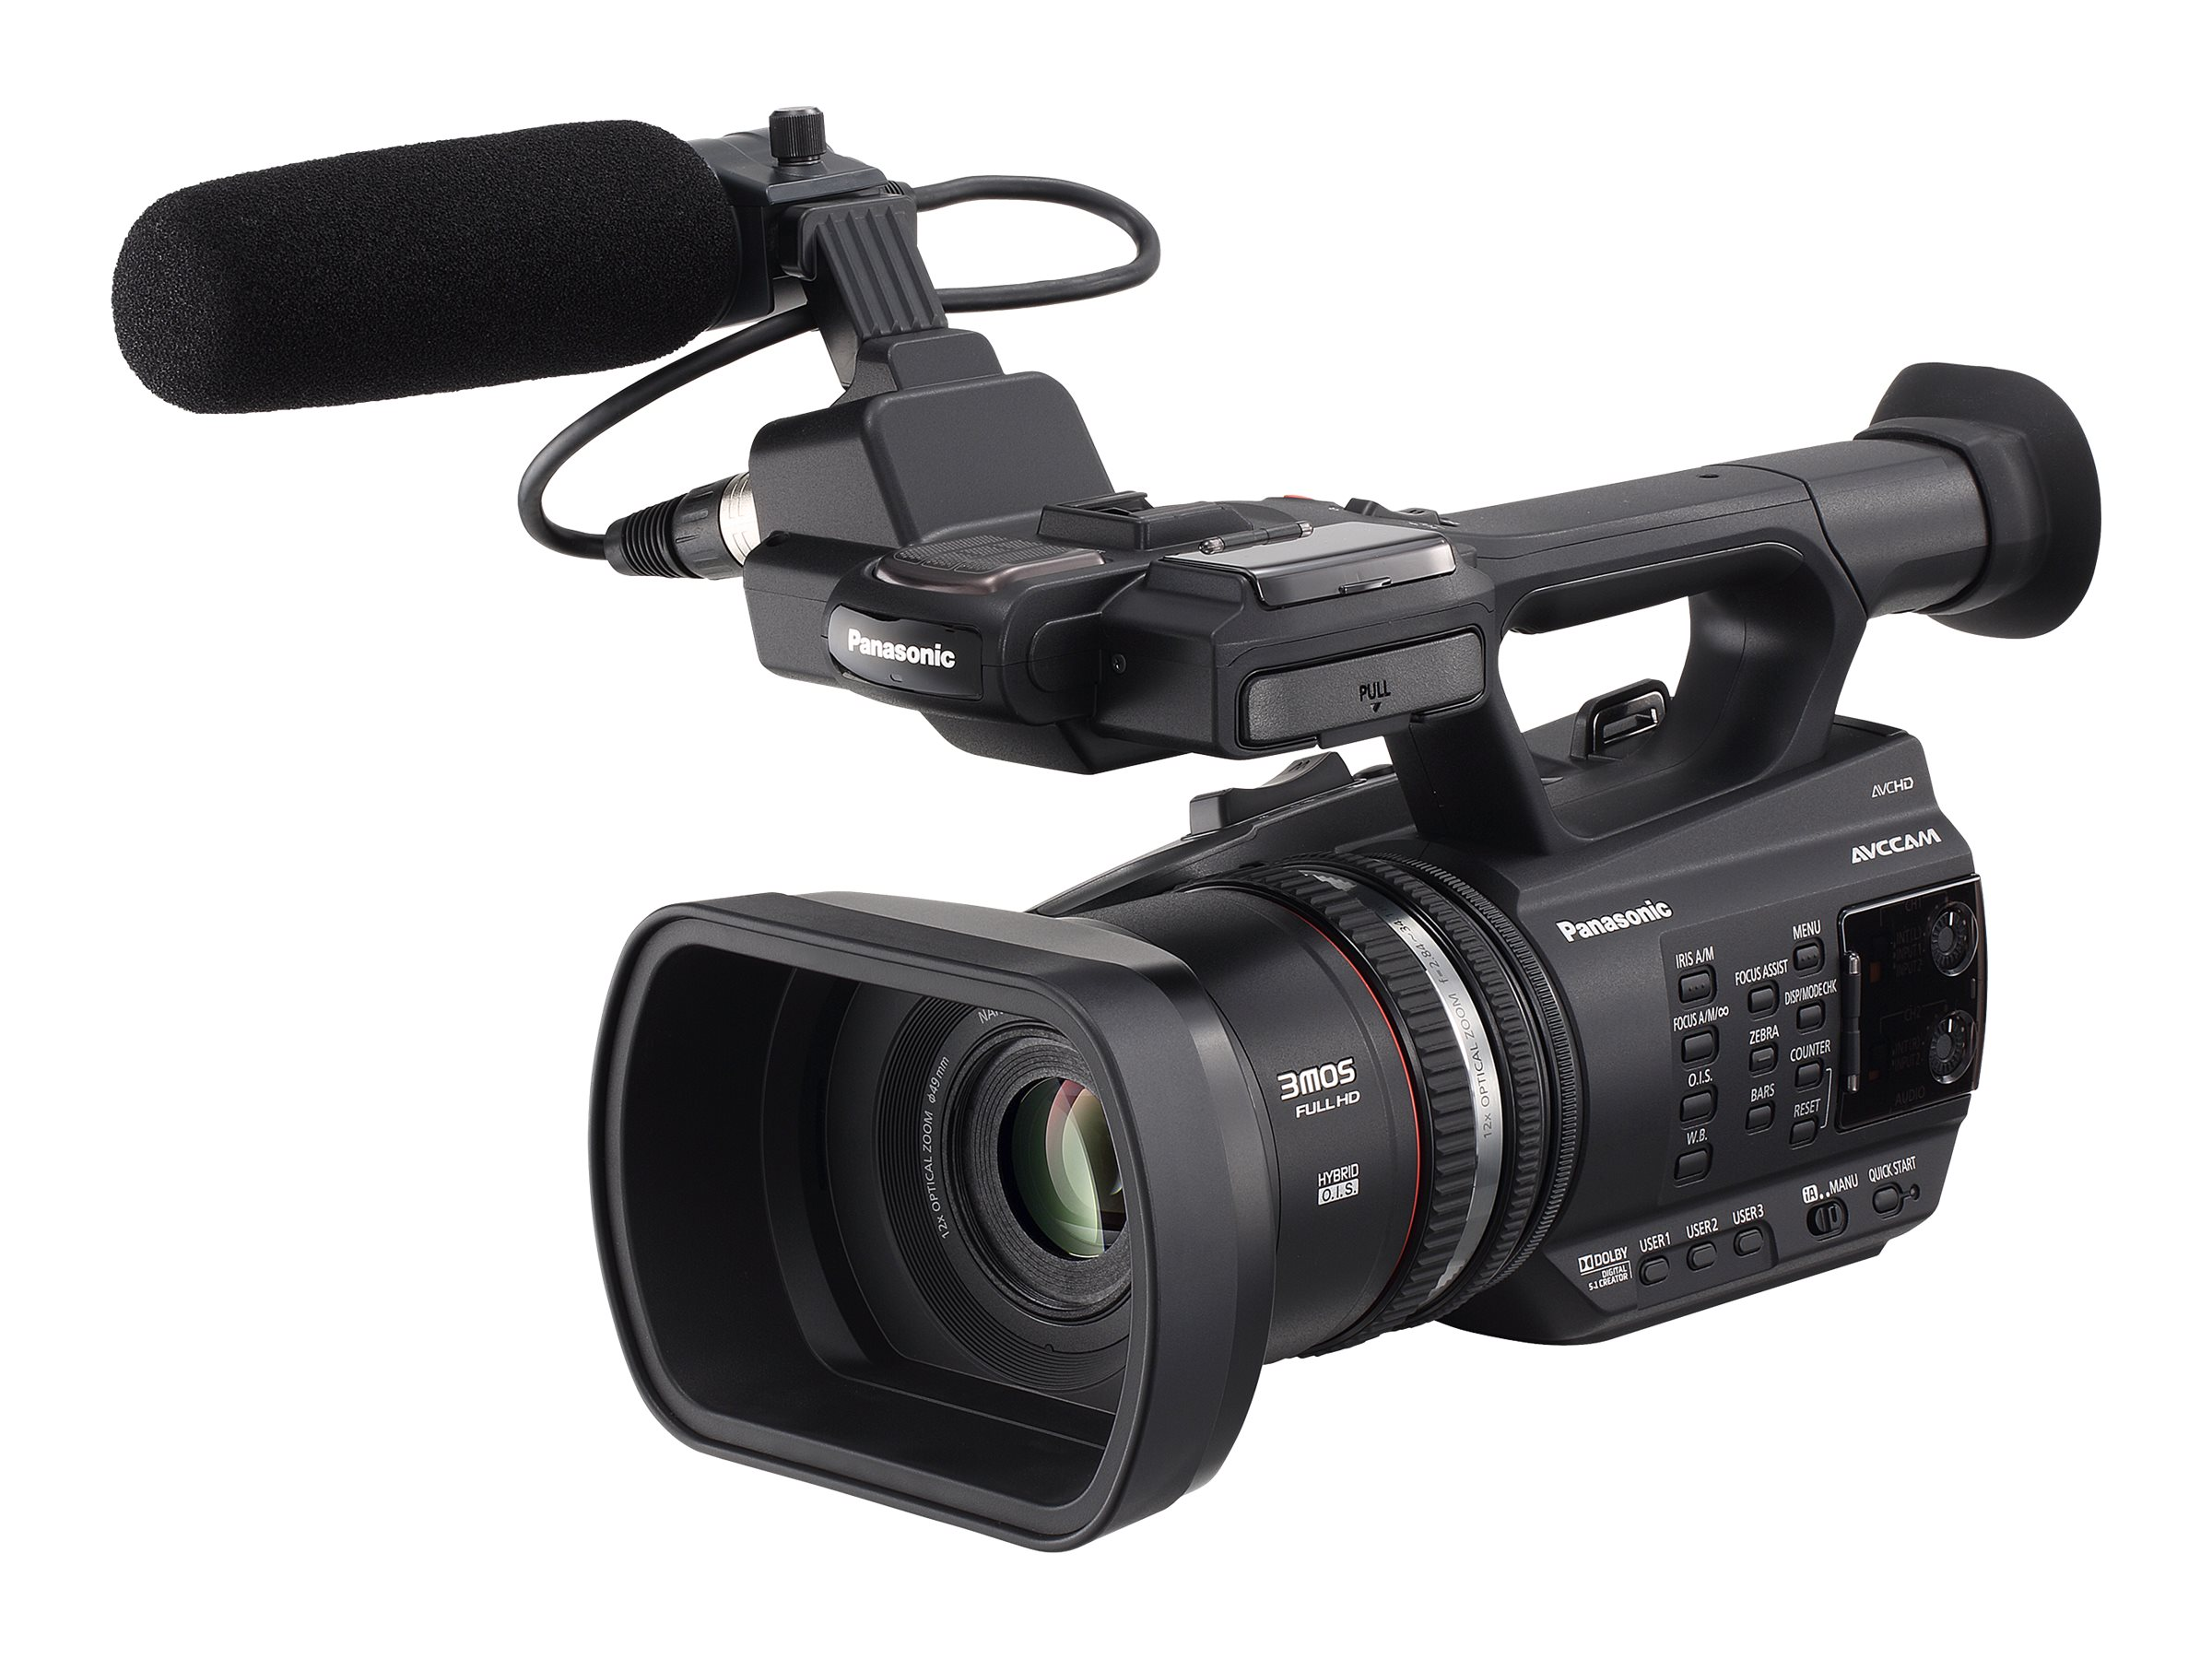 Panasonic Full HD Handheld Camcorder, 12x Zoom, Black, AG-AC90A, 28990106, Camcorders